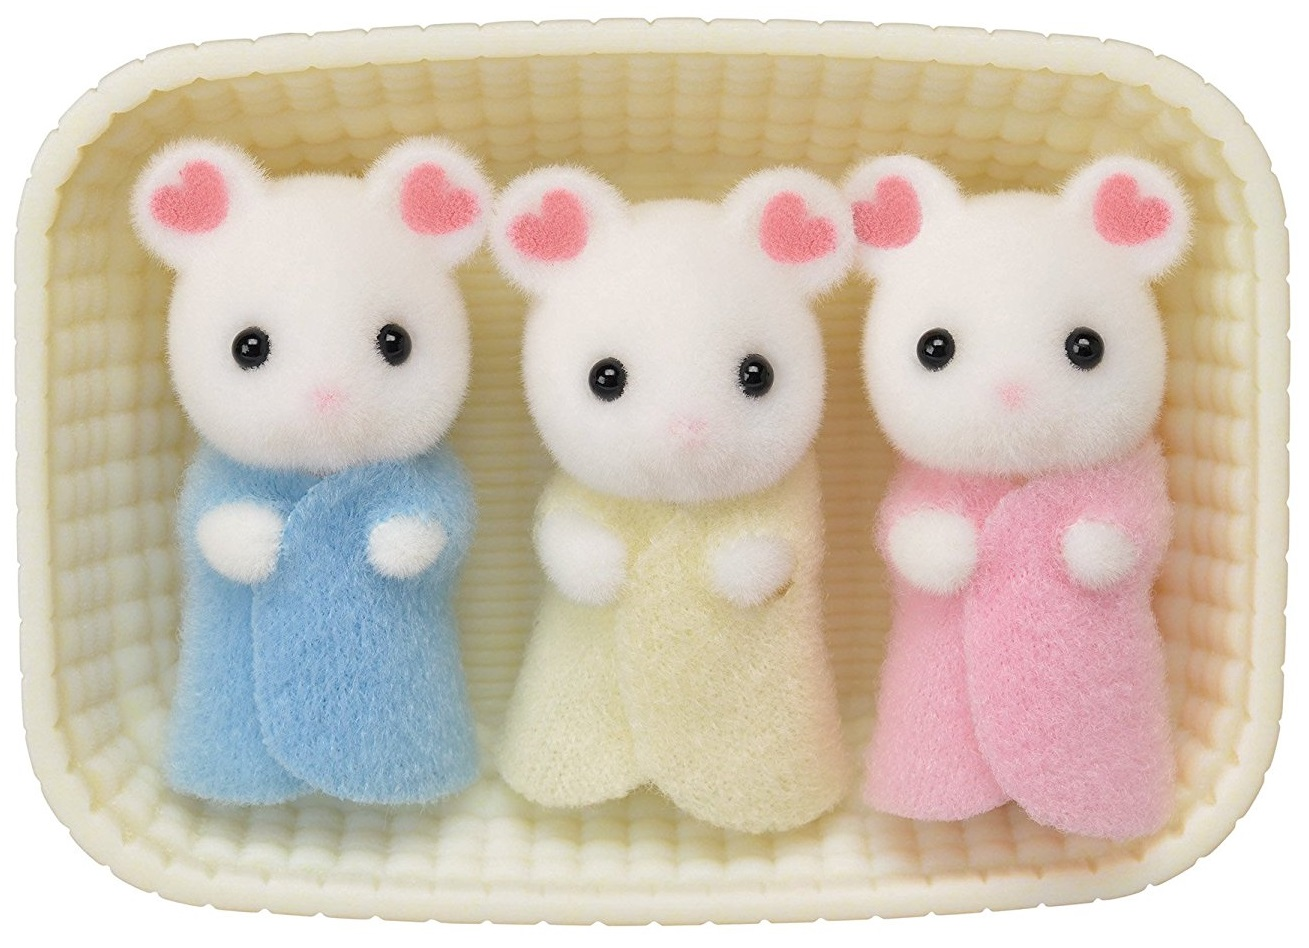 CALICO CRITTERS #CC1806 Marshmallow Mouse Triplets - New Factory Sealed